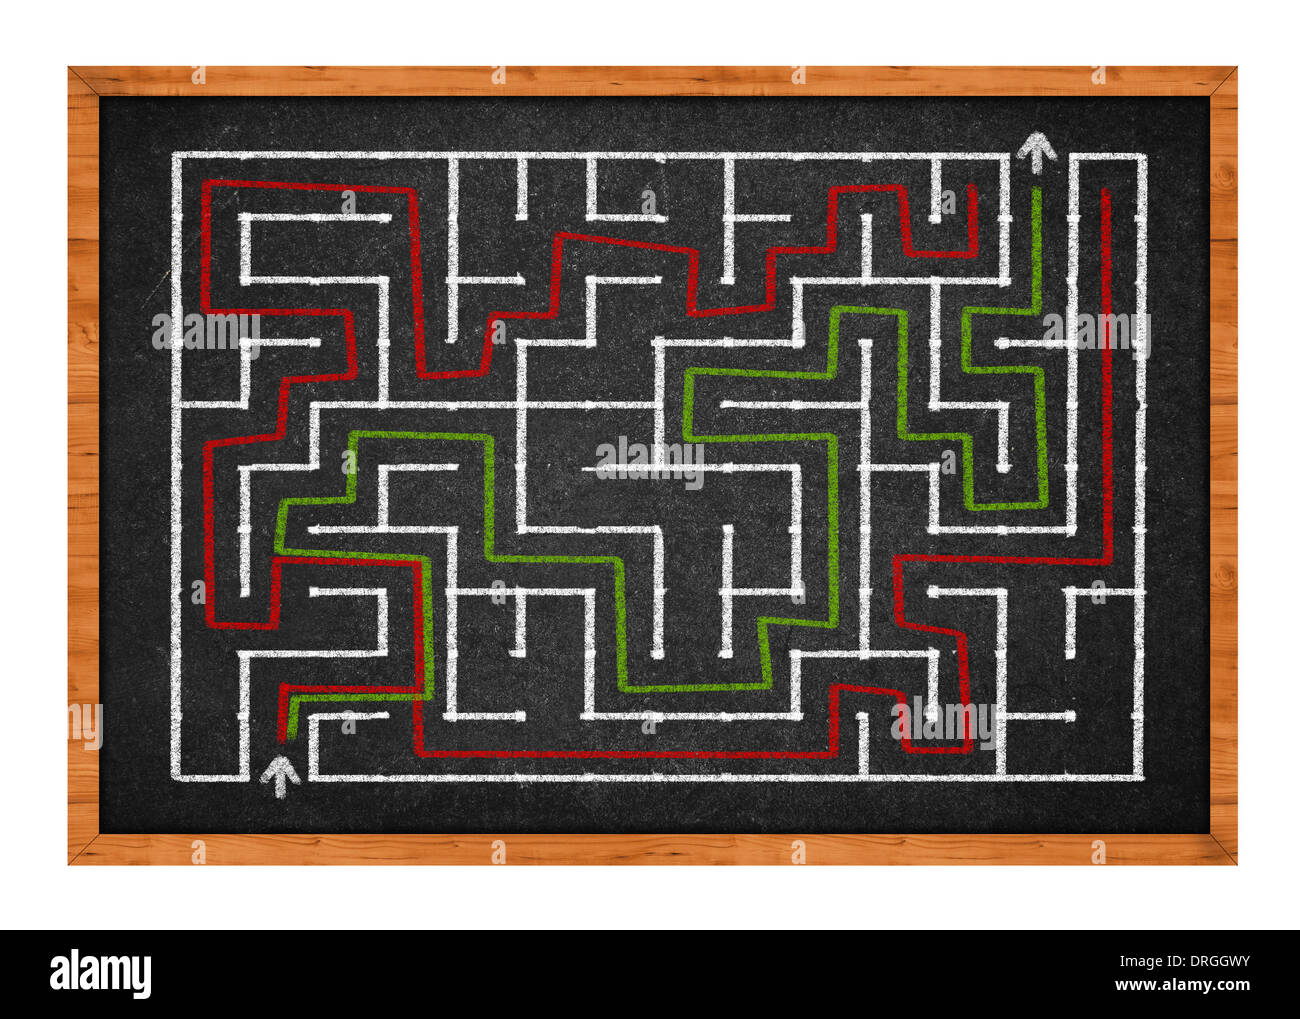 Labyrinthe dessiné à la main sur un tableau noir en classe Photo Stock